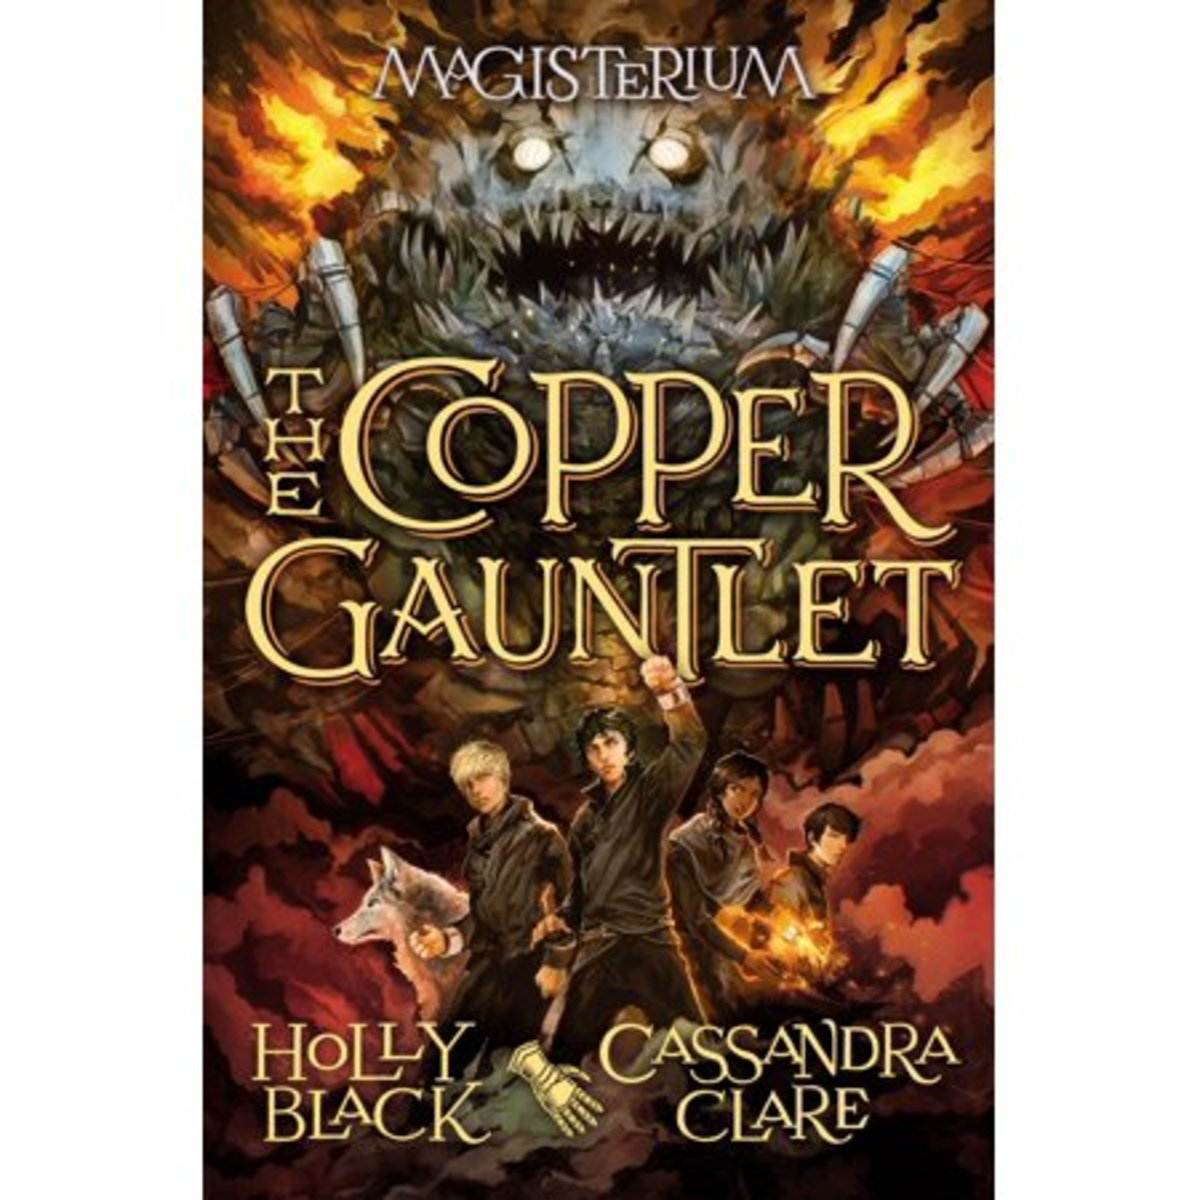 The Copper Gauntlet by Holly Black & Cassandra Clare